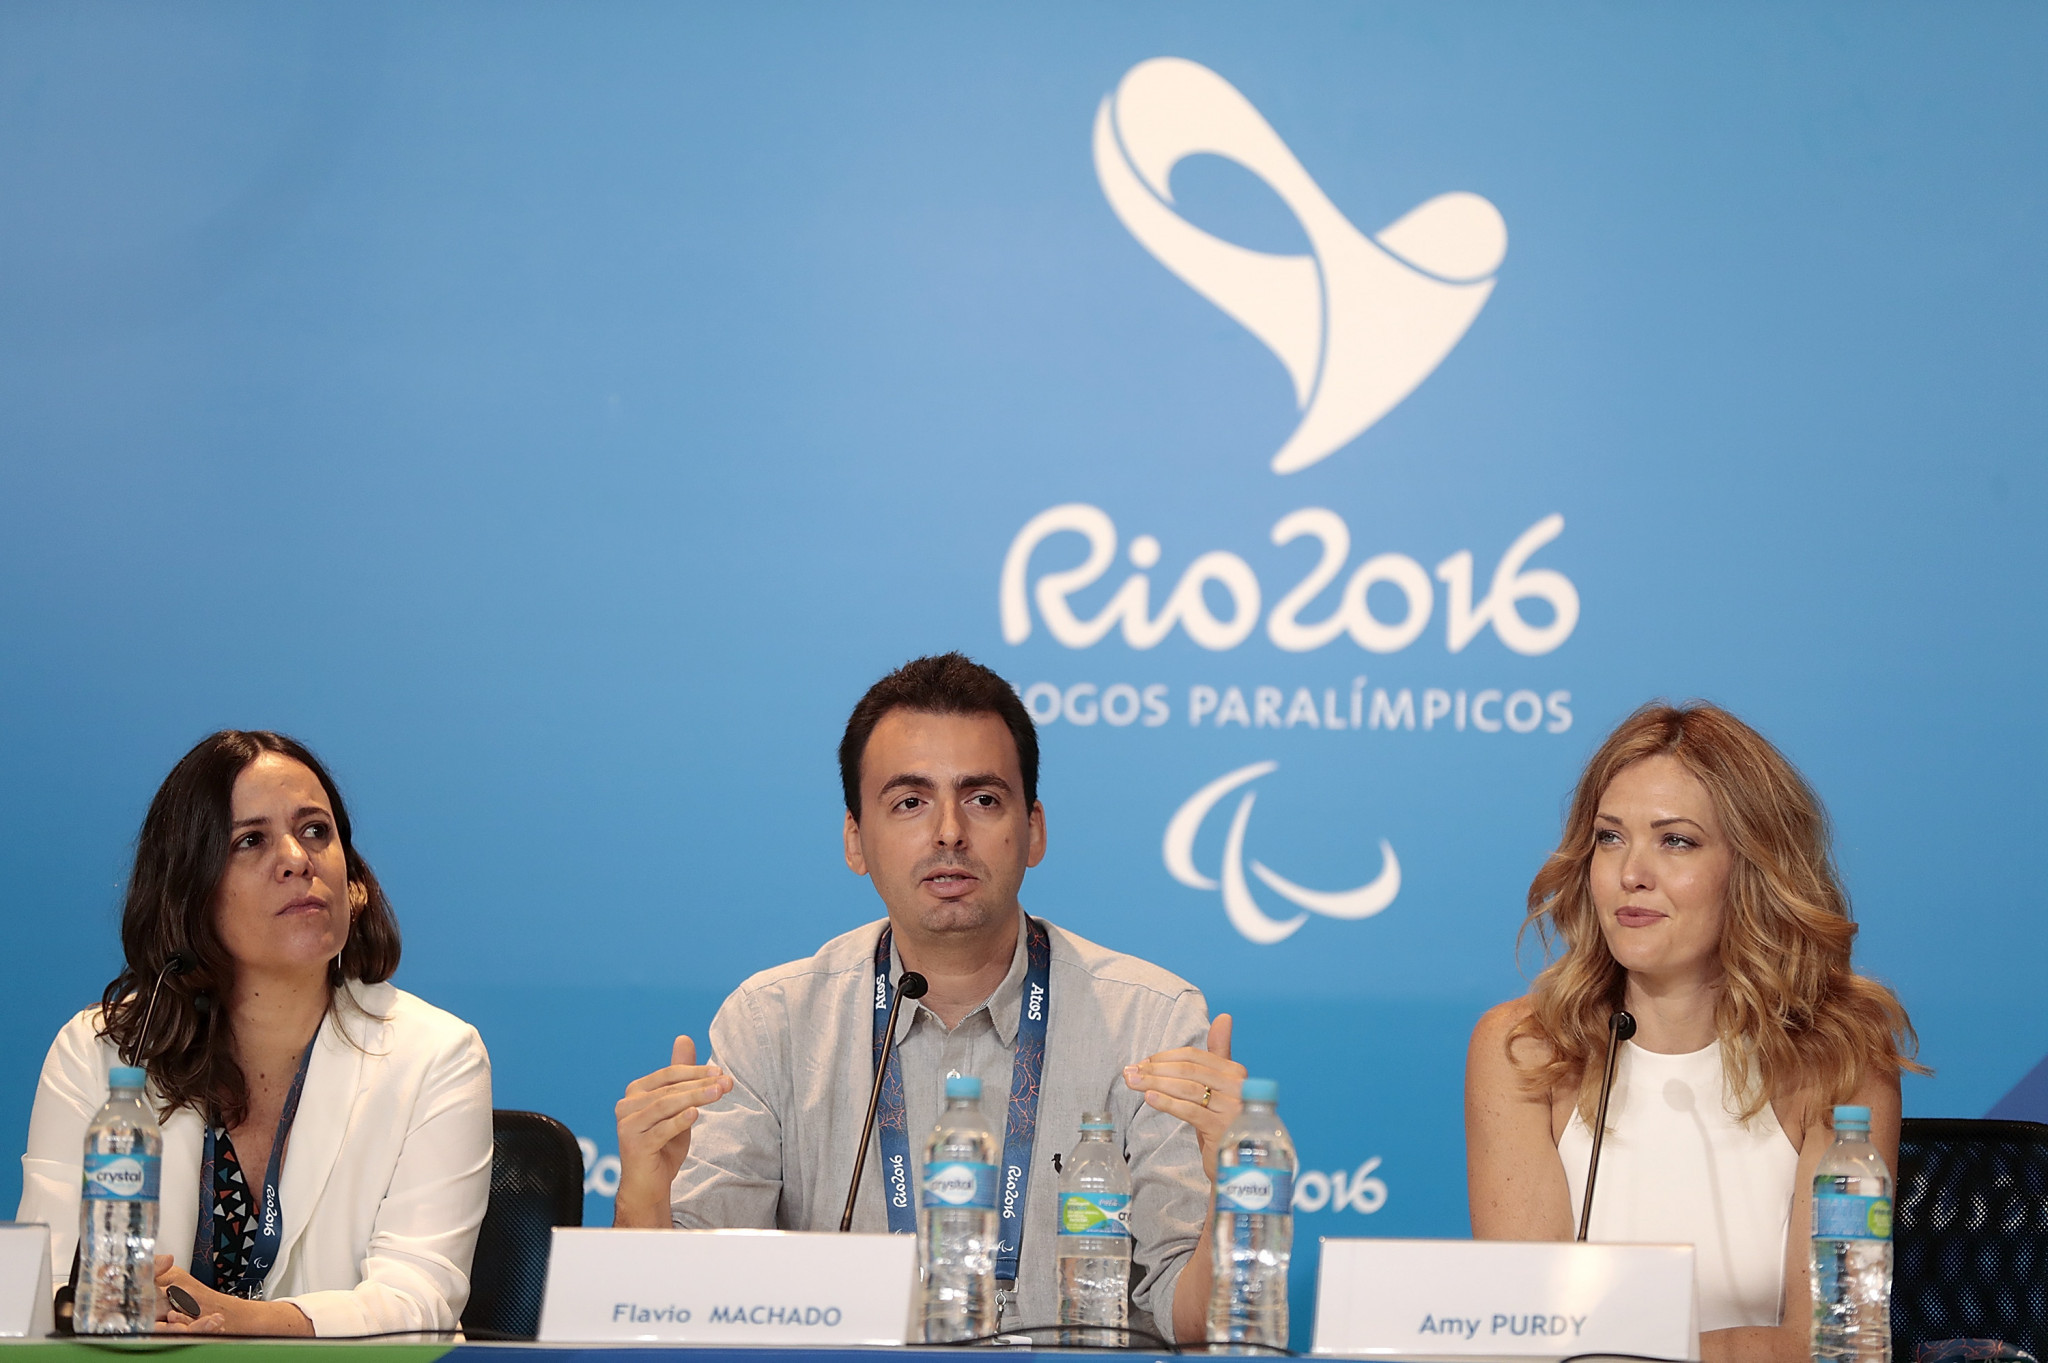 IPC President pays tribute to Rio 2016 Paralympic Ceremonies executive producer after death